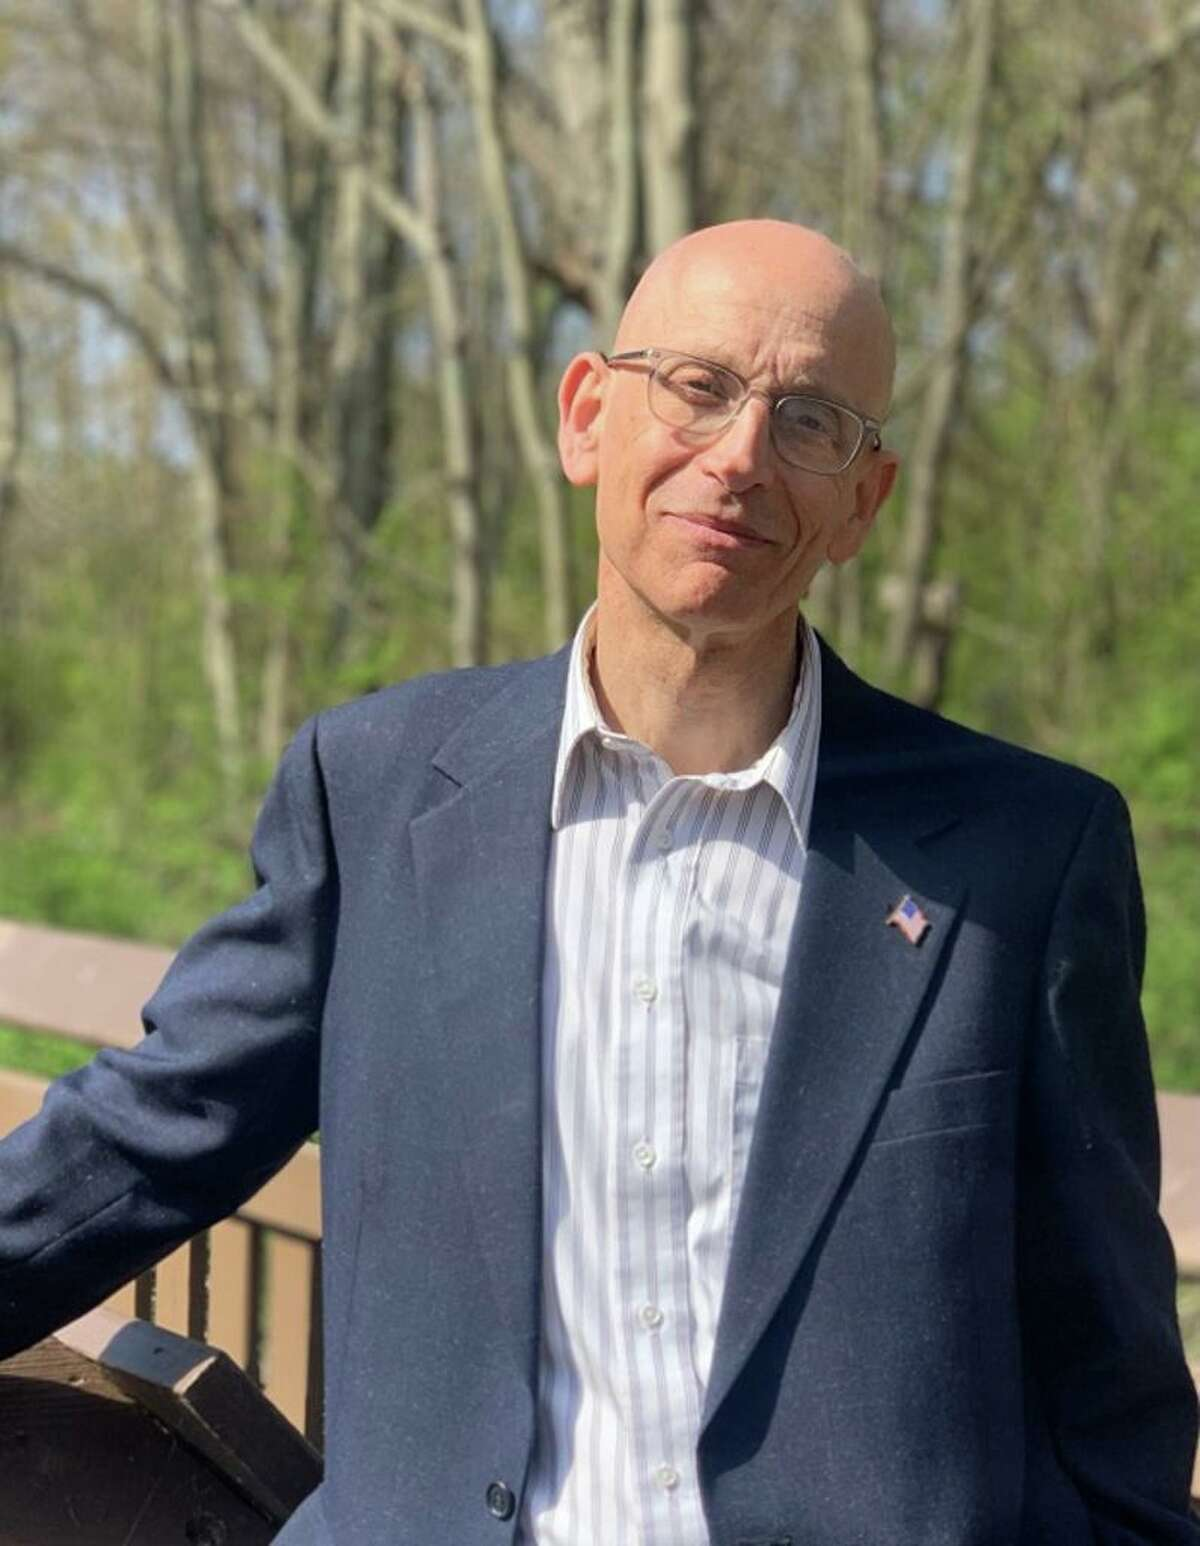 West Haven Republican mayoral candidate Barry Lee Cohen